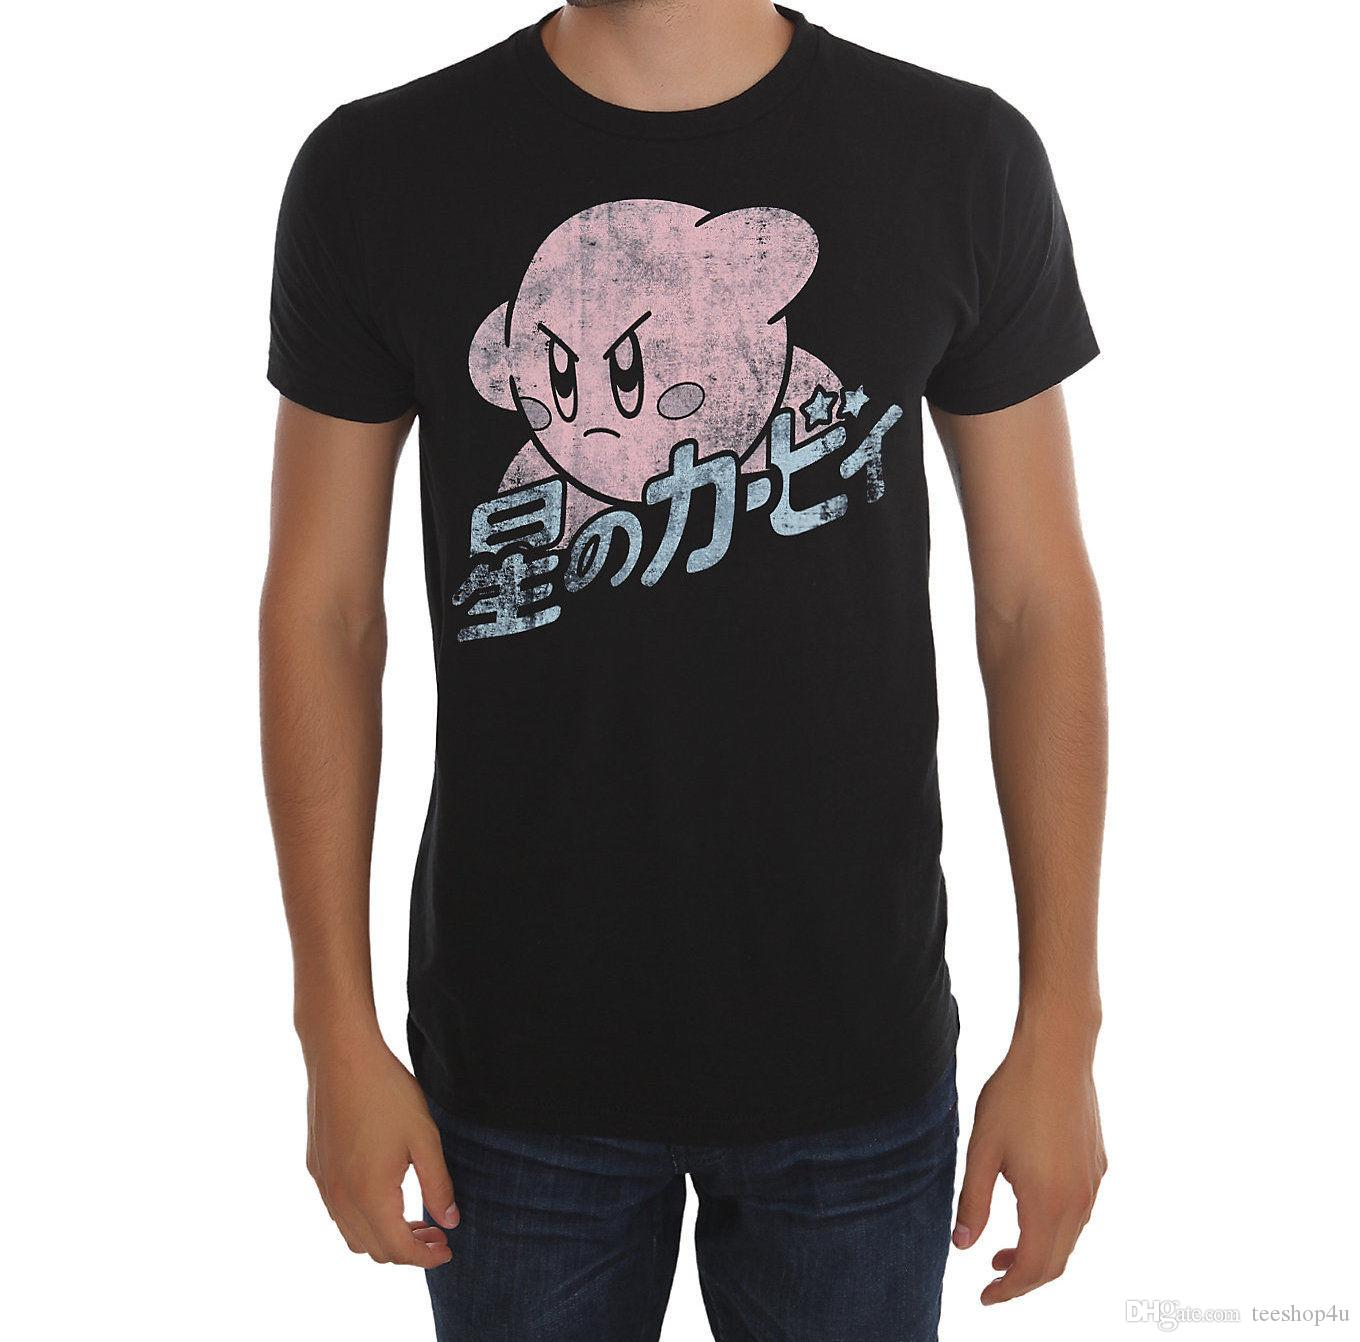 6dade04a8d2 Factory Outlet Kirby T Shirt Nwt Licensed   Official Tee Shirt Men Boy  Premium Short Sleeve Crewneck Cotton XXXL Party Tshirts Gag T Shirts T  Shirts With ...